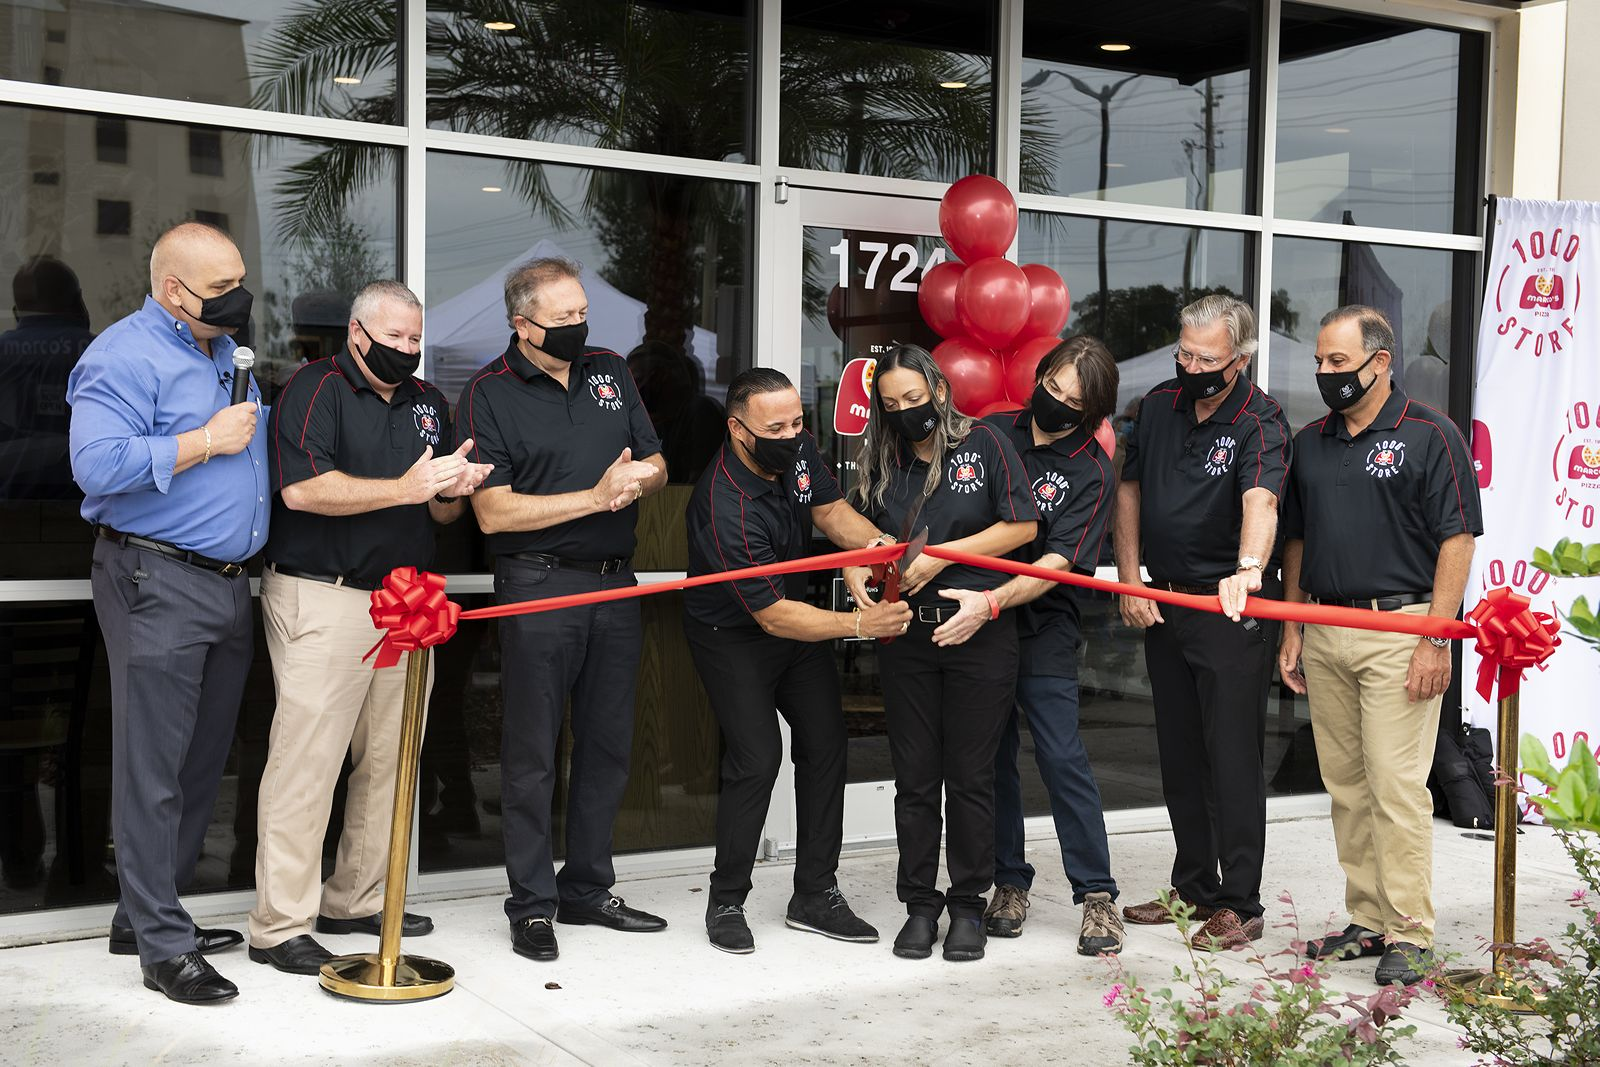 Marco's Pizza franchisees Rafi Vargas, Kattya Barbaran, and Ed Boyer (all holding scissors, center) cut a Grand Opening ribbon at the brand's 1,000th store in Kissimmee, Fla. on Wednesday, Oct. 21, 2020. The three are residents of Kissimmee. Flanking them, from left, are Tony Libardi, Marco's President and COO, Mike Fletcher, Marco's Area Representative, founder Pasquale Giammarco, Marco's Pizza CEO Jack Butorac, and Glenn Ajmo, Marco's Pizza Area Representative.